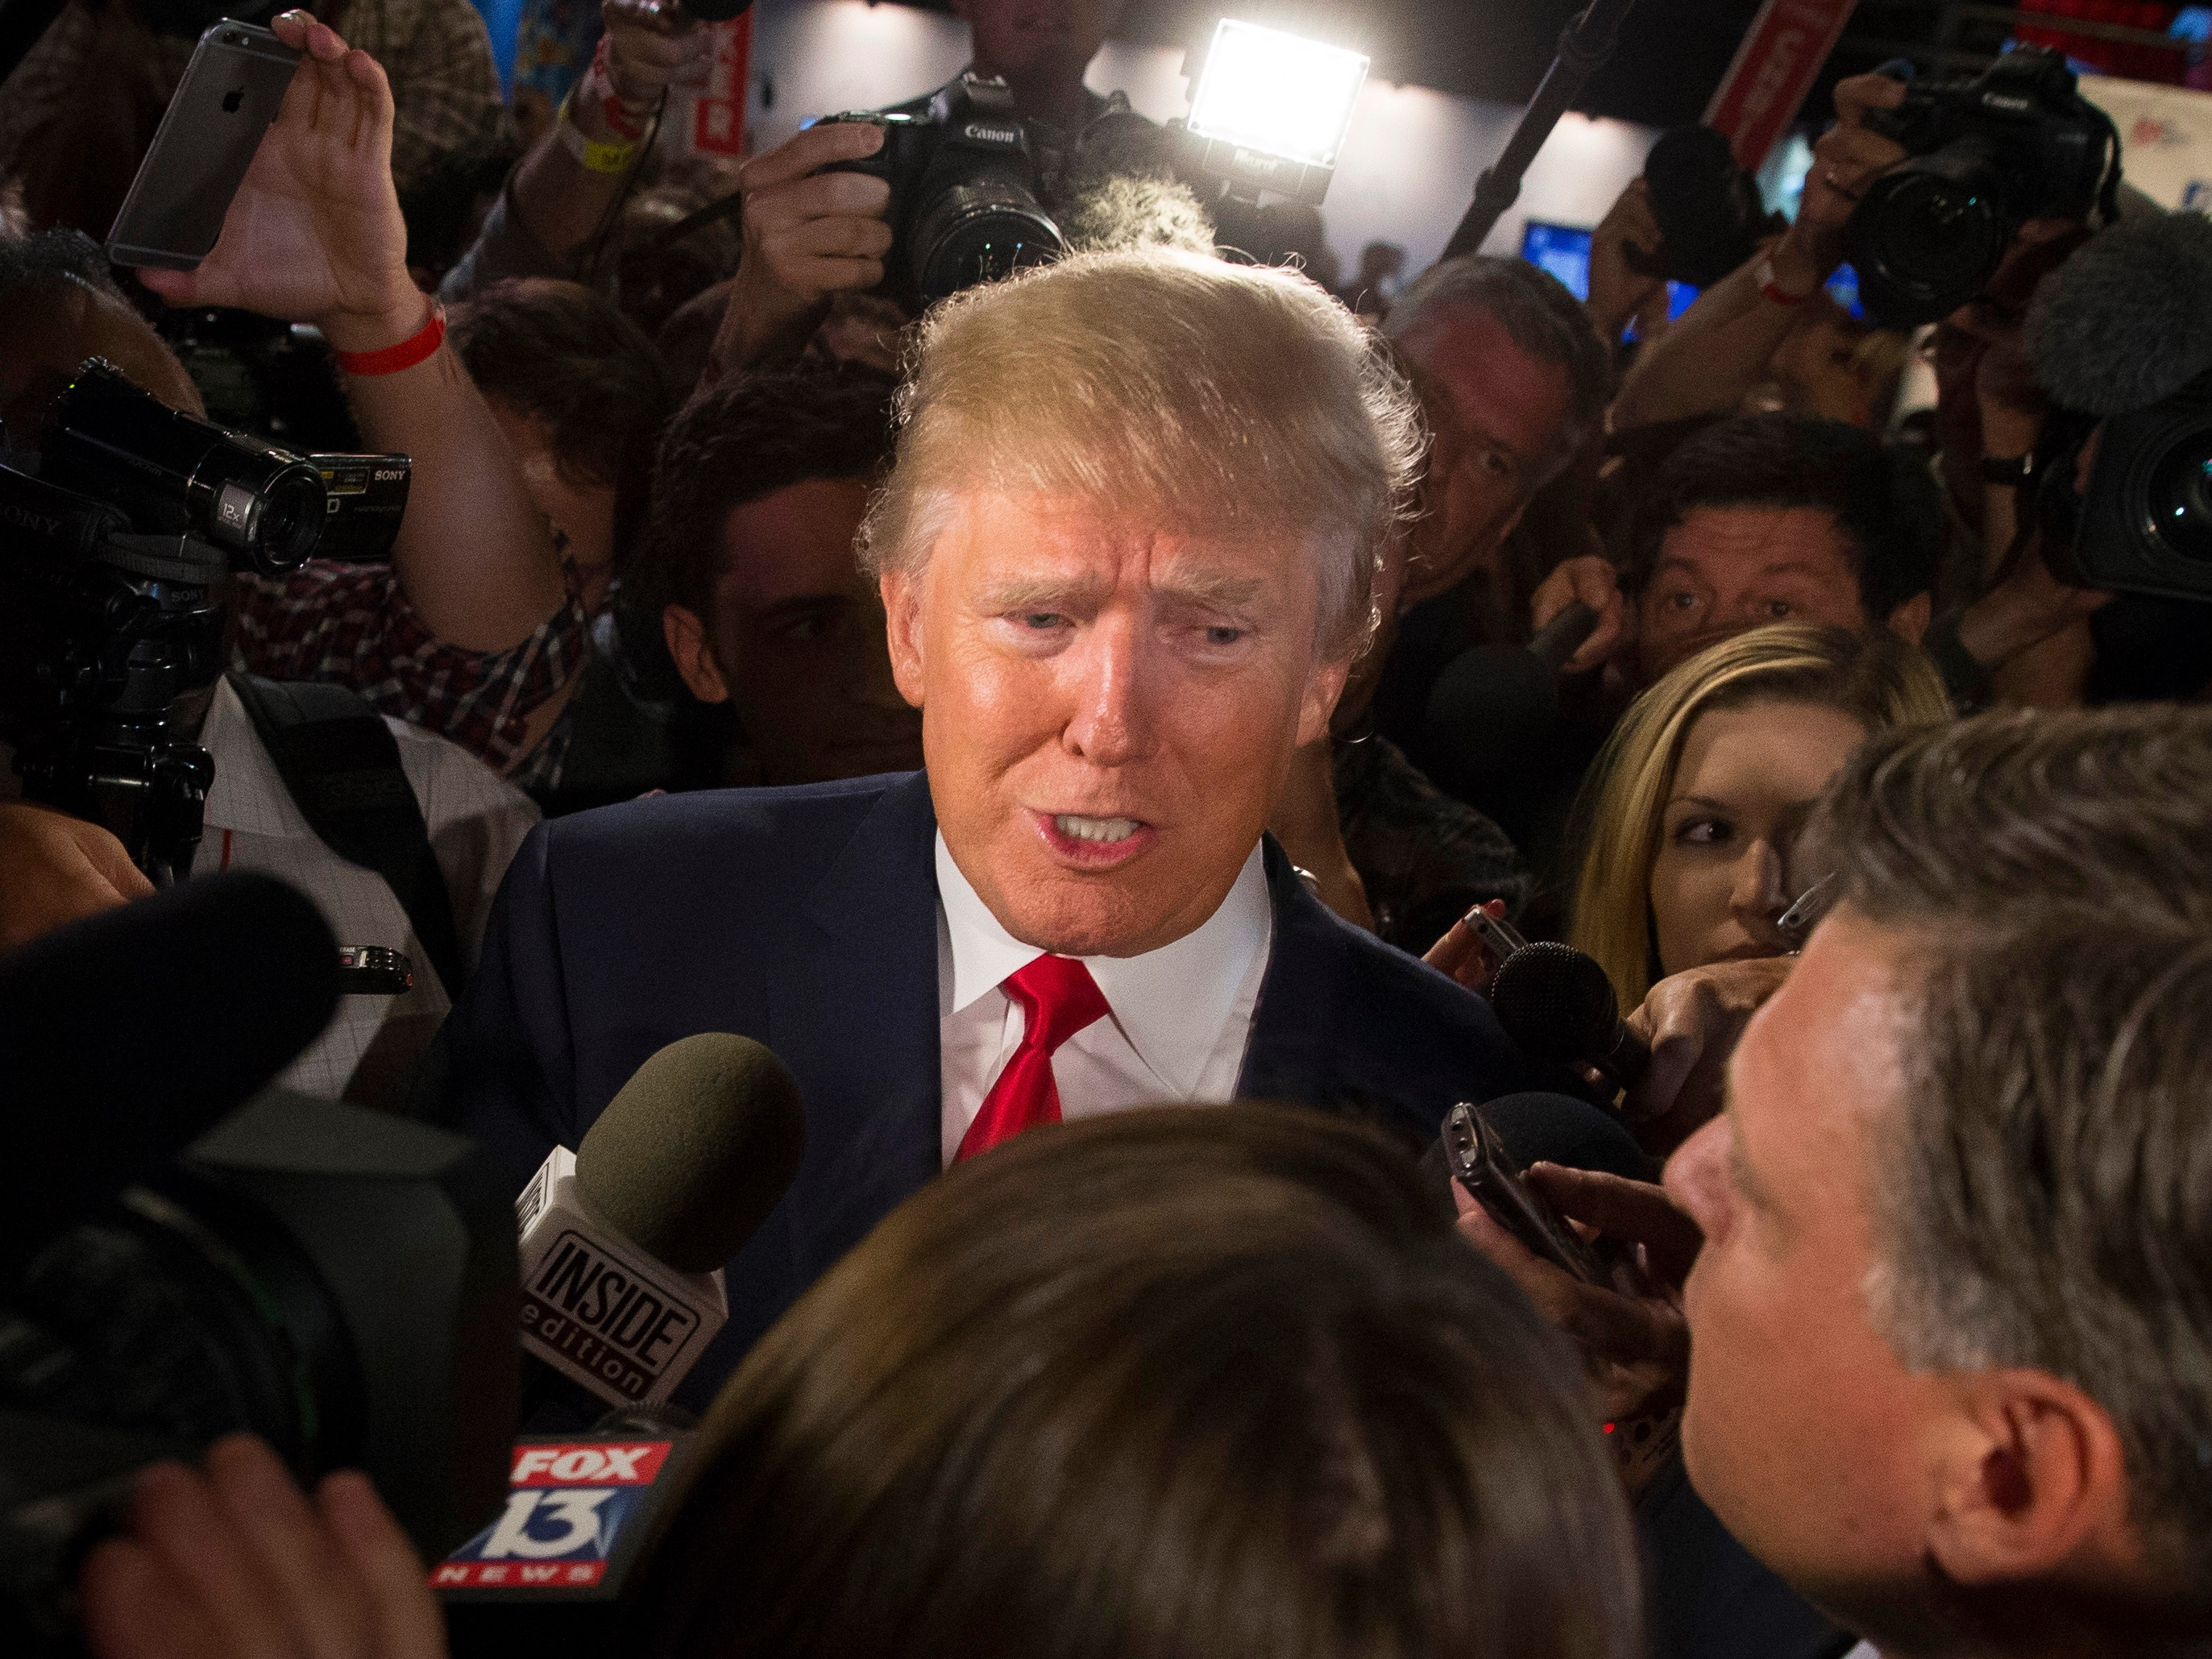 Republican presidential candidate Donald Trump speaks to the media in the spin room after the first Republican presidential debate, held Thursday in Cleveland.